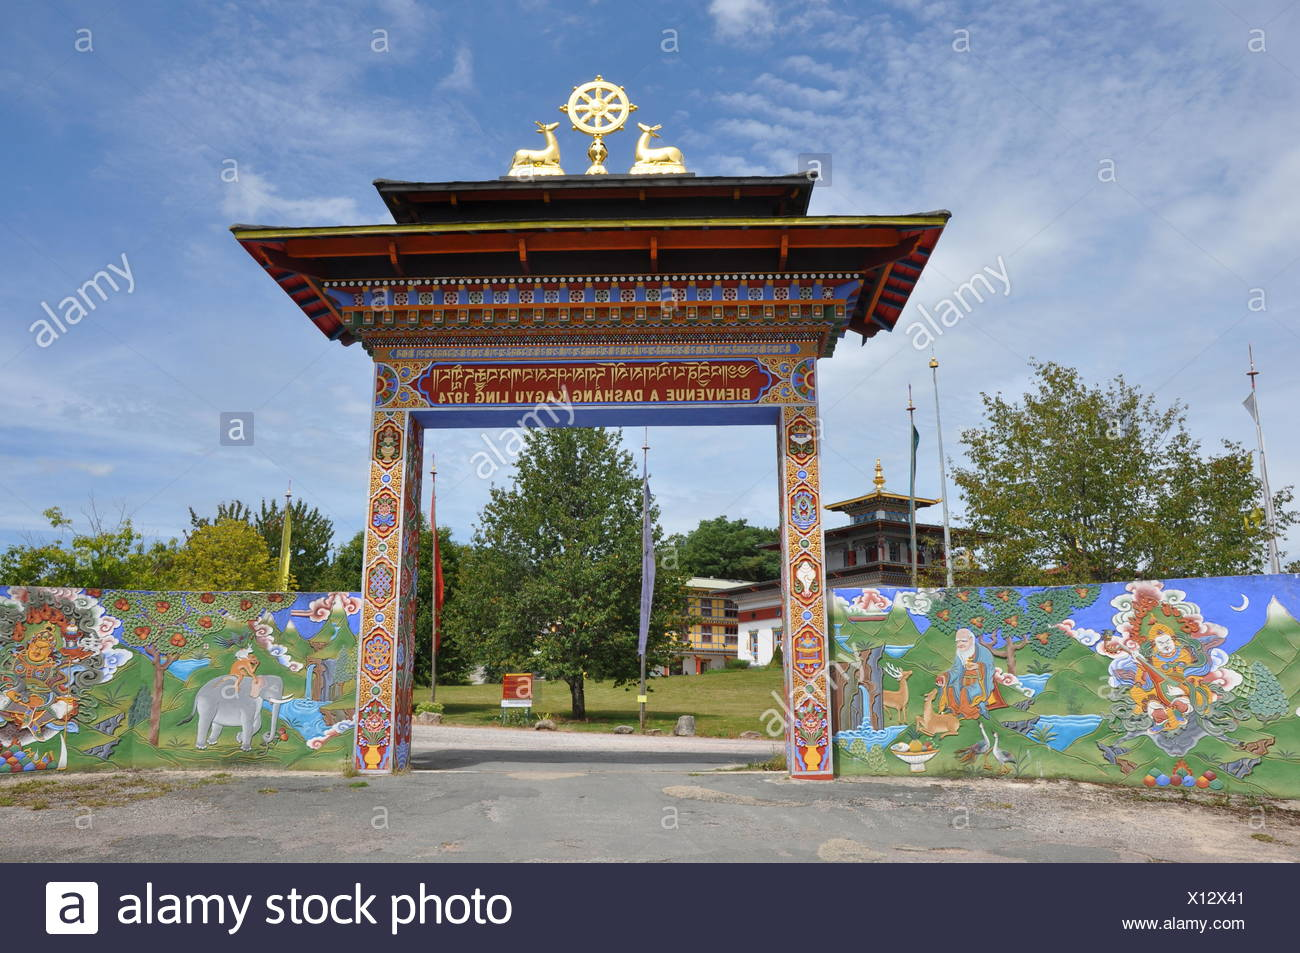 temple of a thousand buddhas,france - Stock Image